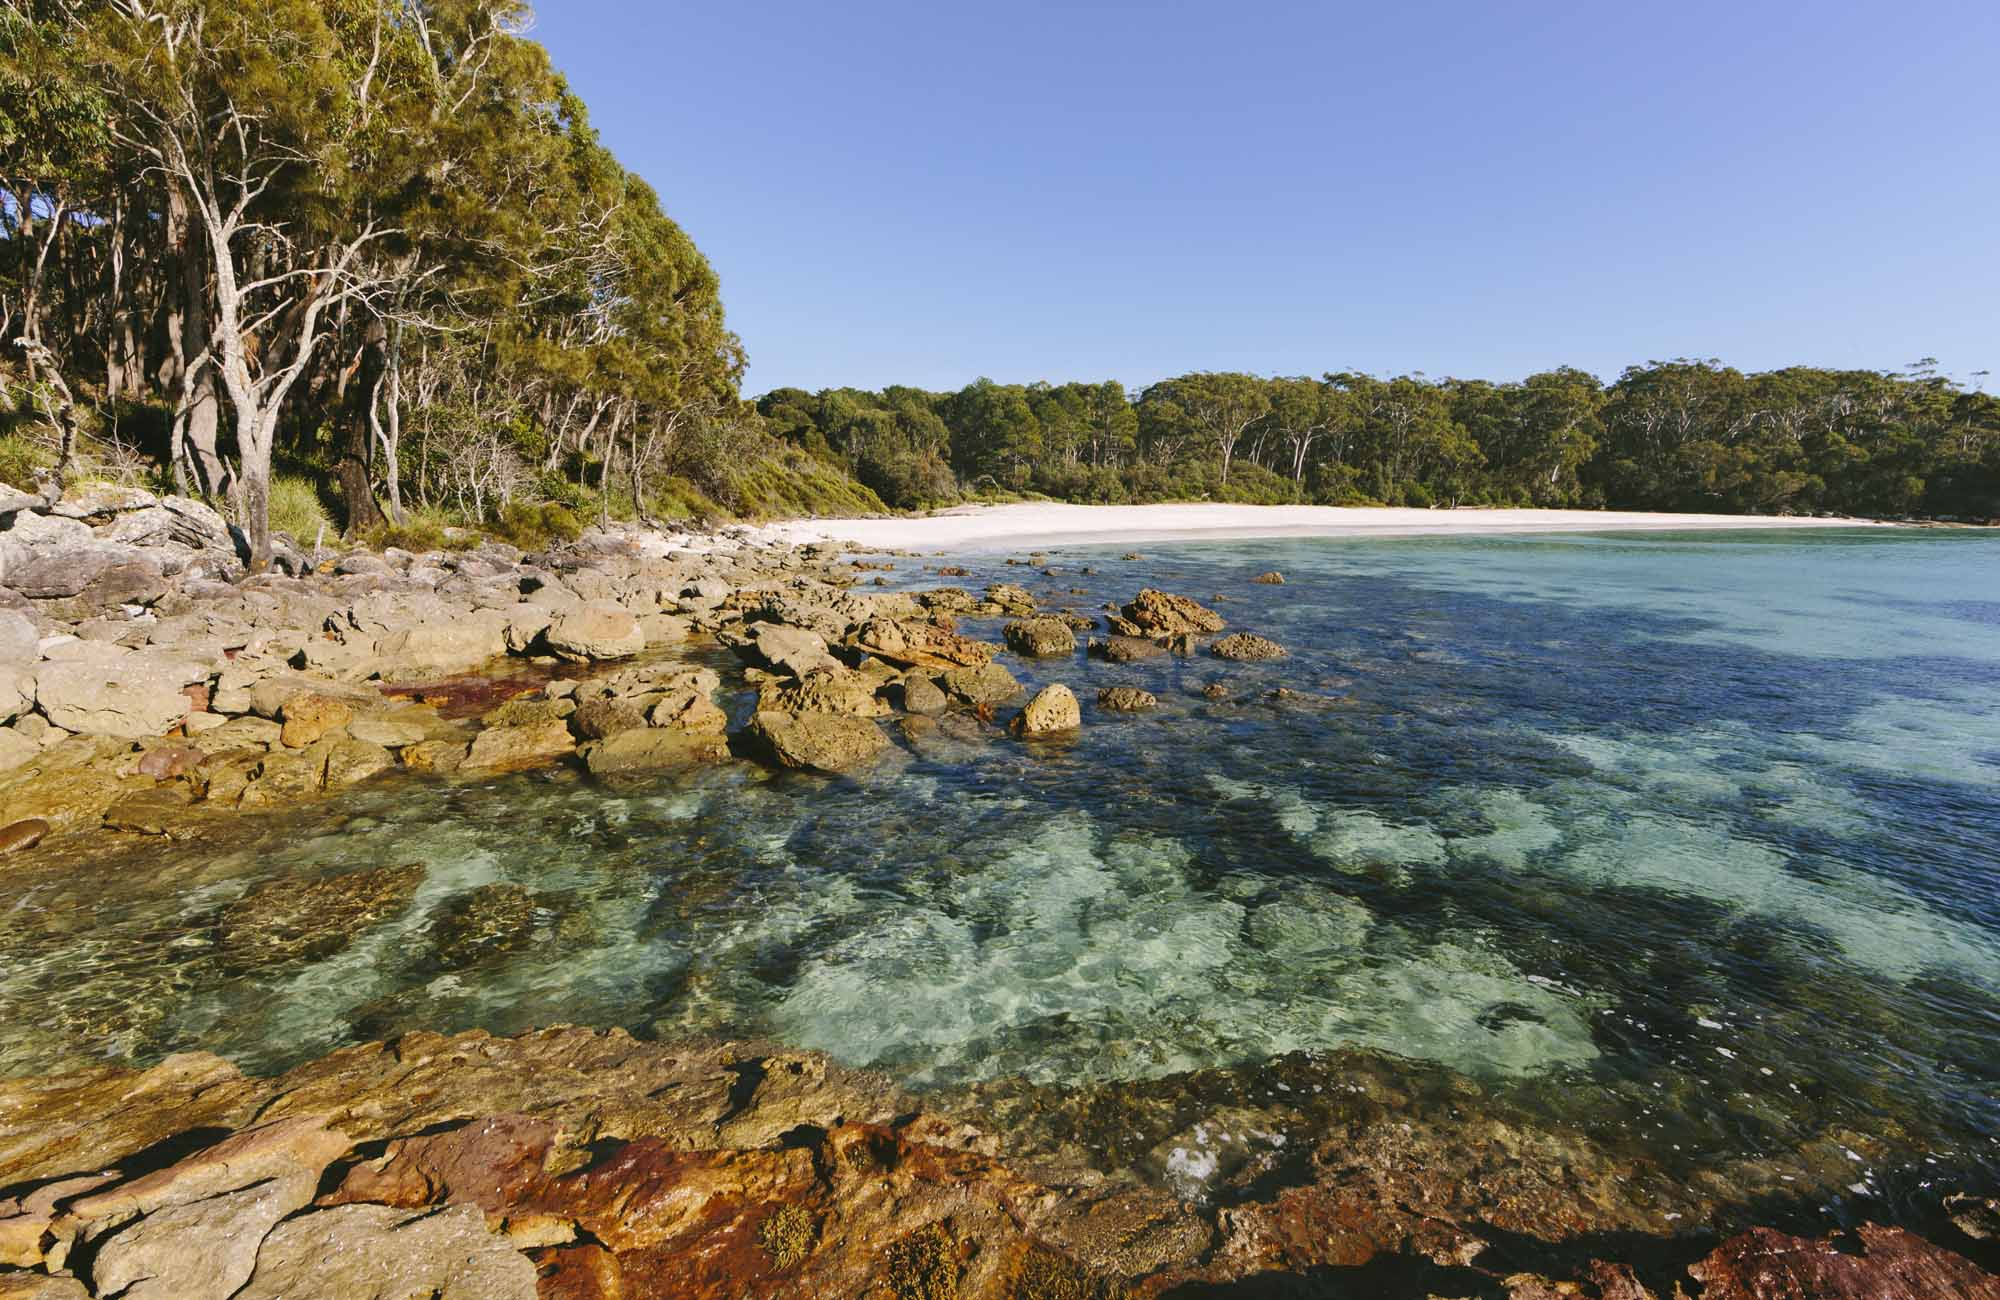 Greenfield Beach, Jervis Bay National Park. Photo: David Finnegan/NSW Government